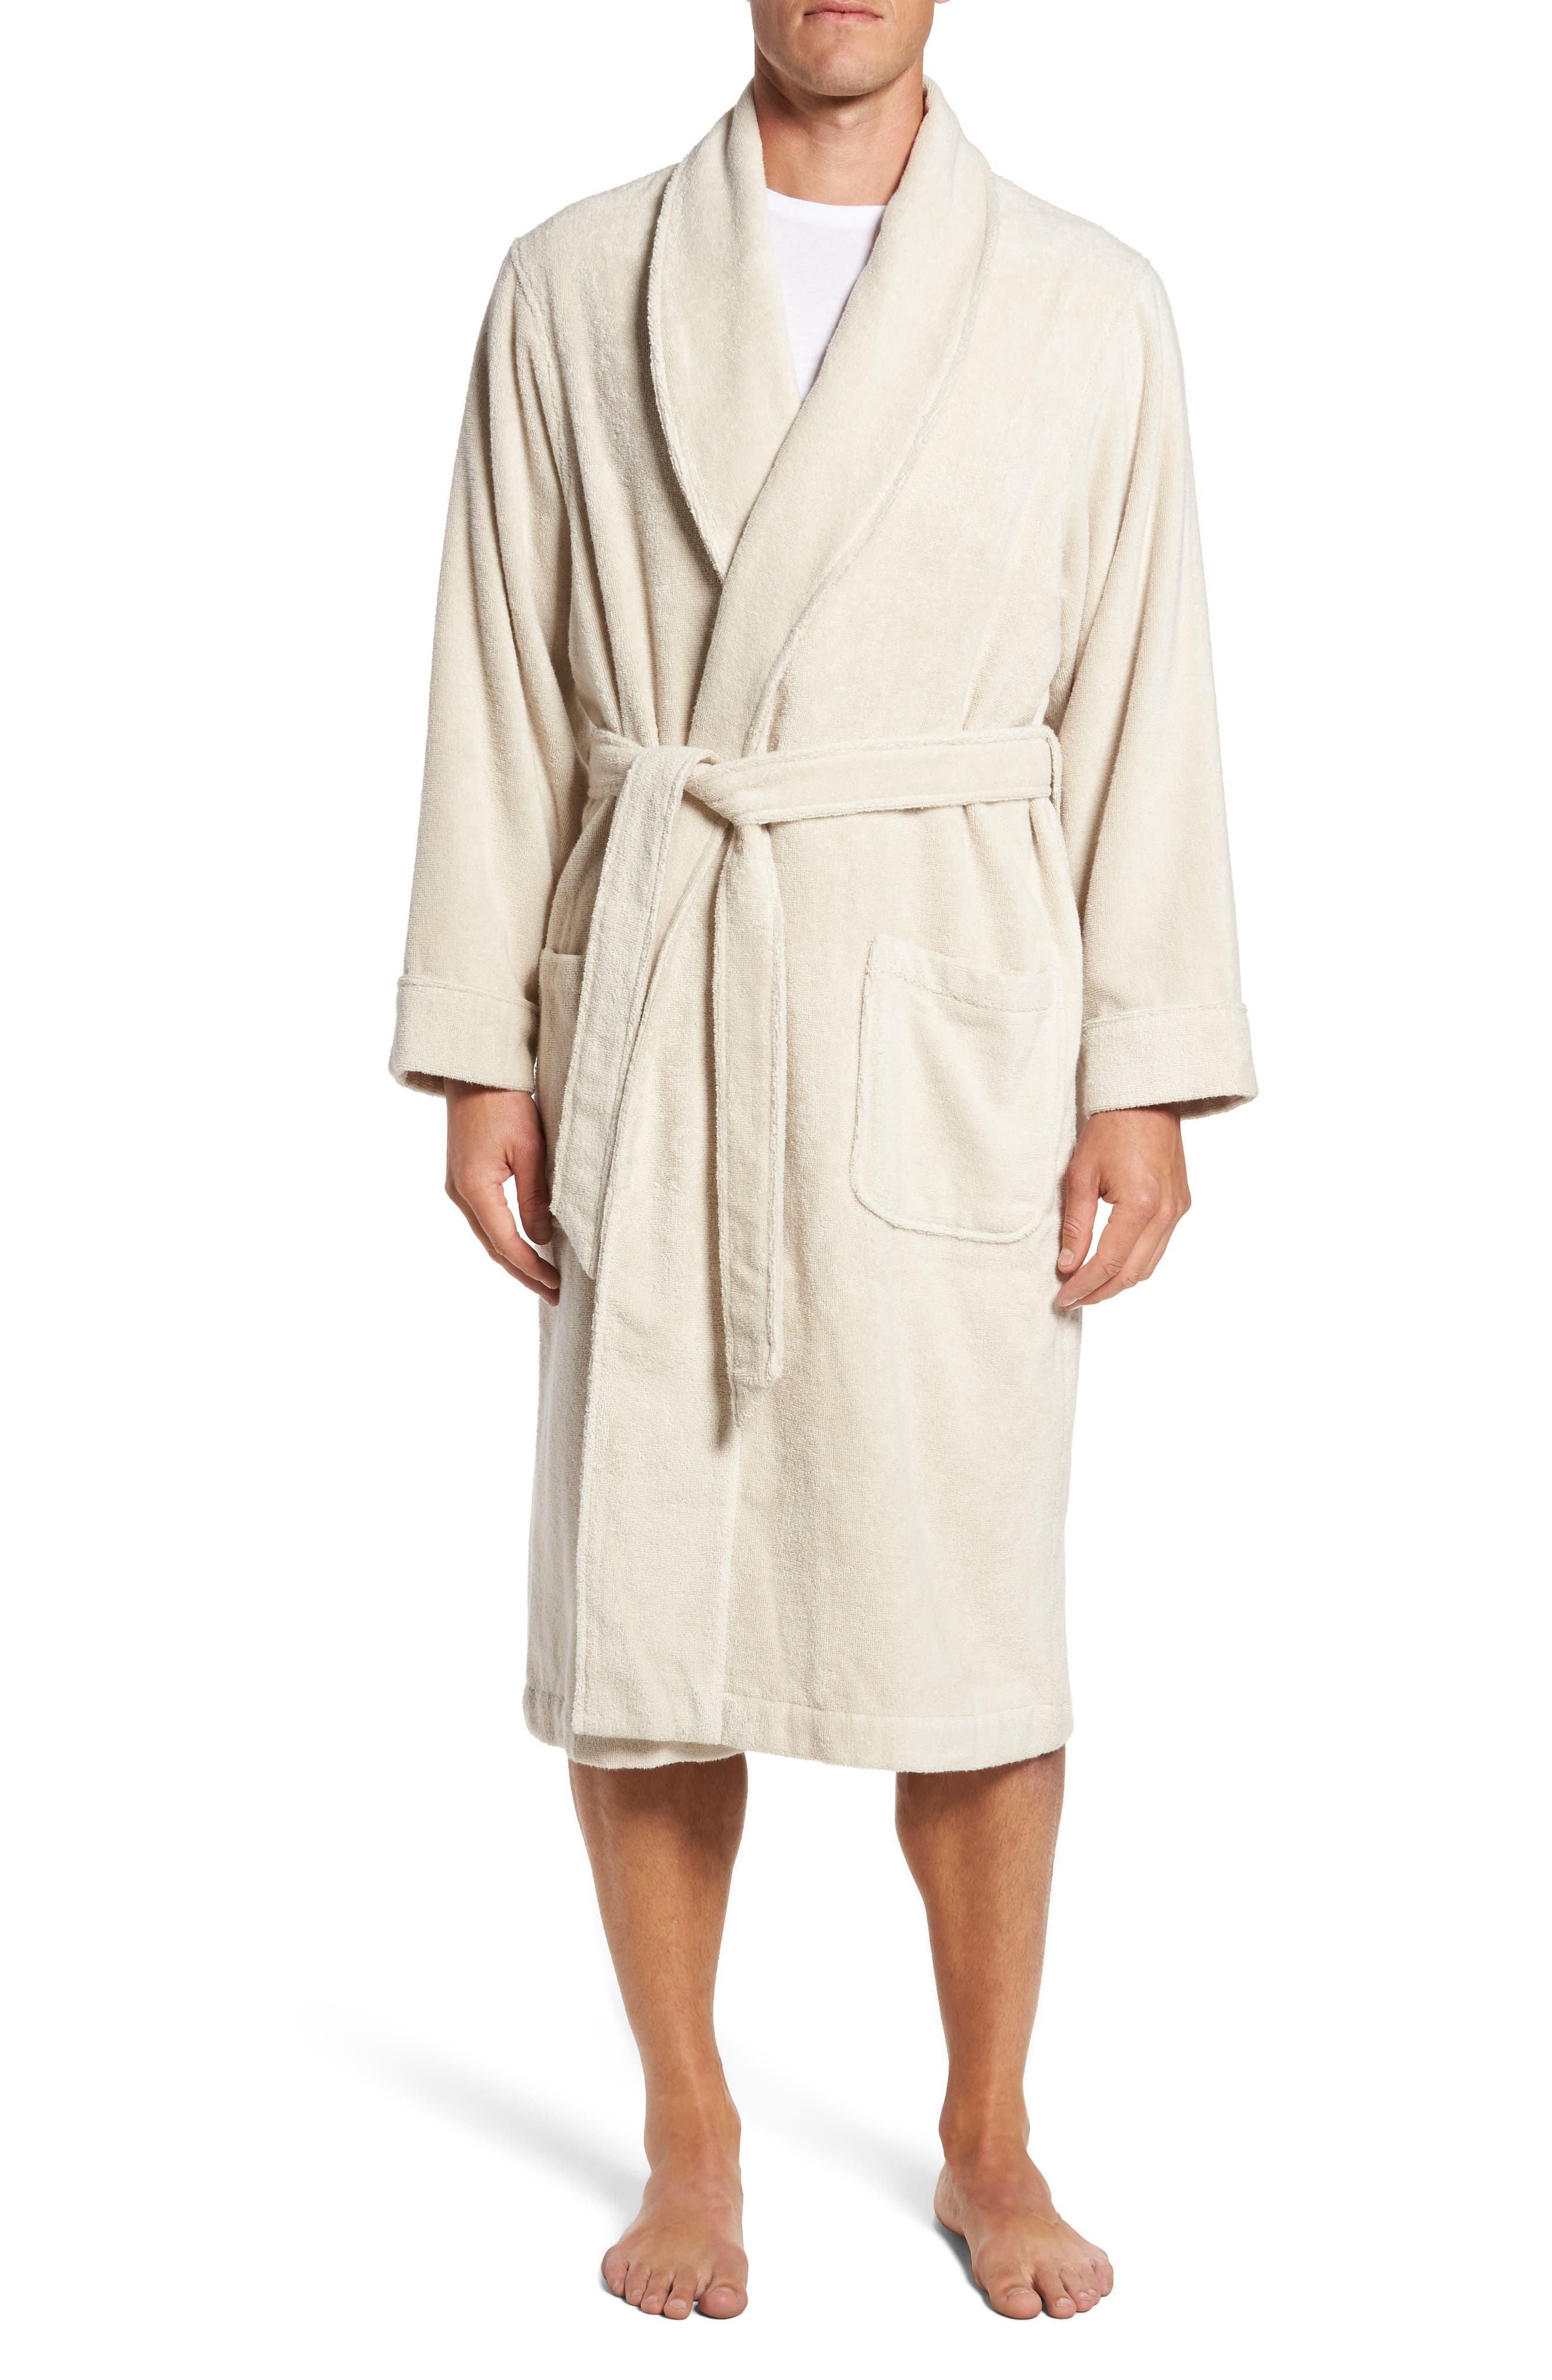 Hydro Cotton Terry Robe,                         Main,                         color, Beige Oatmeal